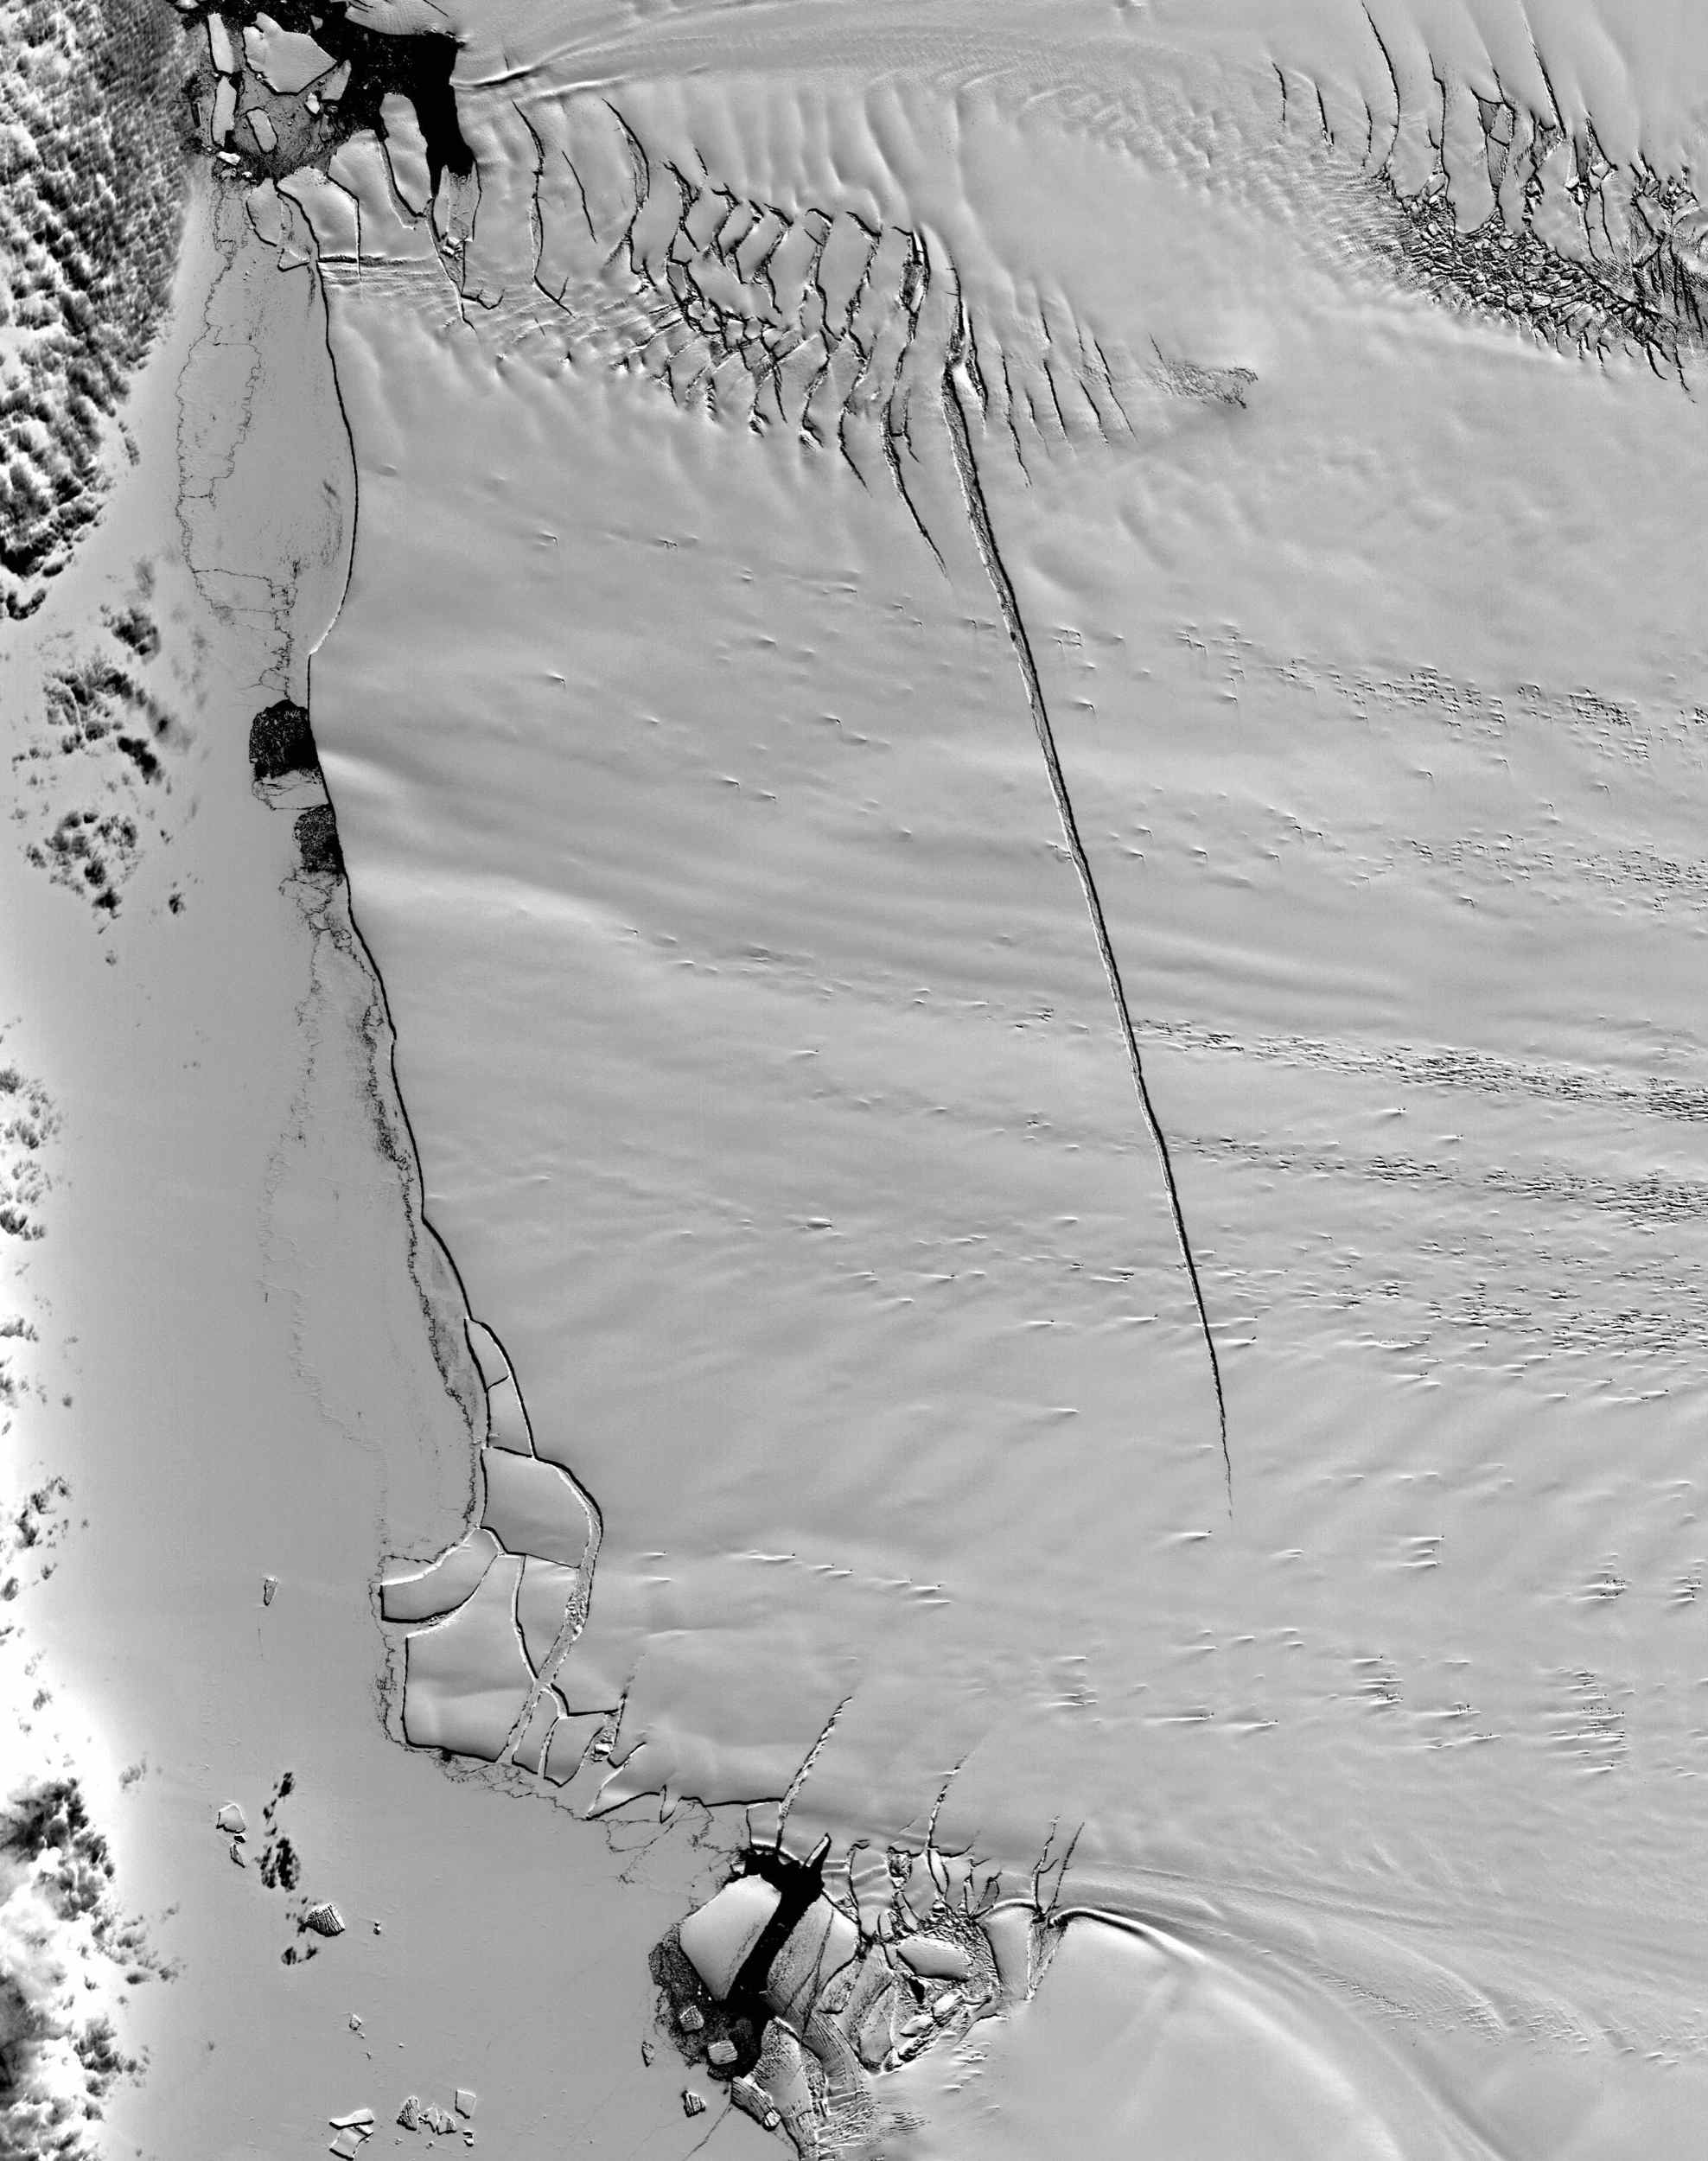 Pine Island Glacier has undergone a steady loss of elevation with retreat of the grounding line in recent decades. NASA's Terra satellite acquired the scene on December 12, 2000.